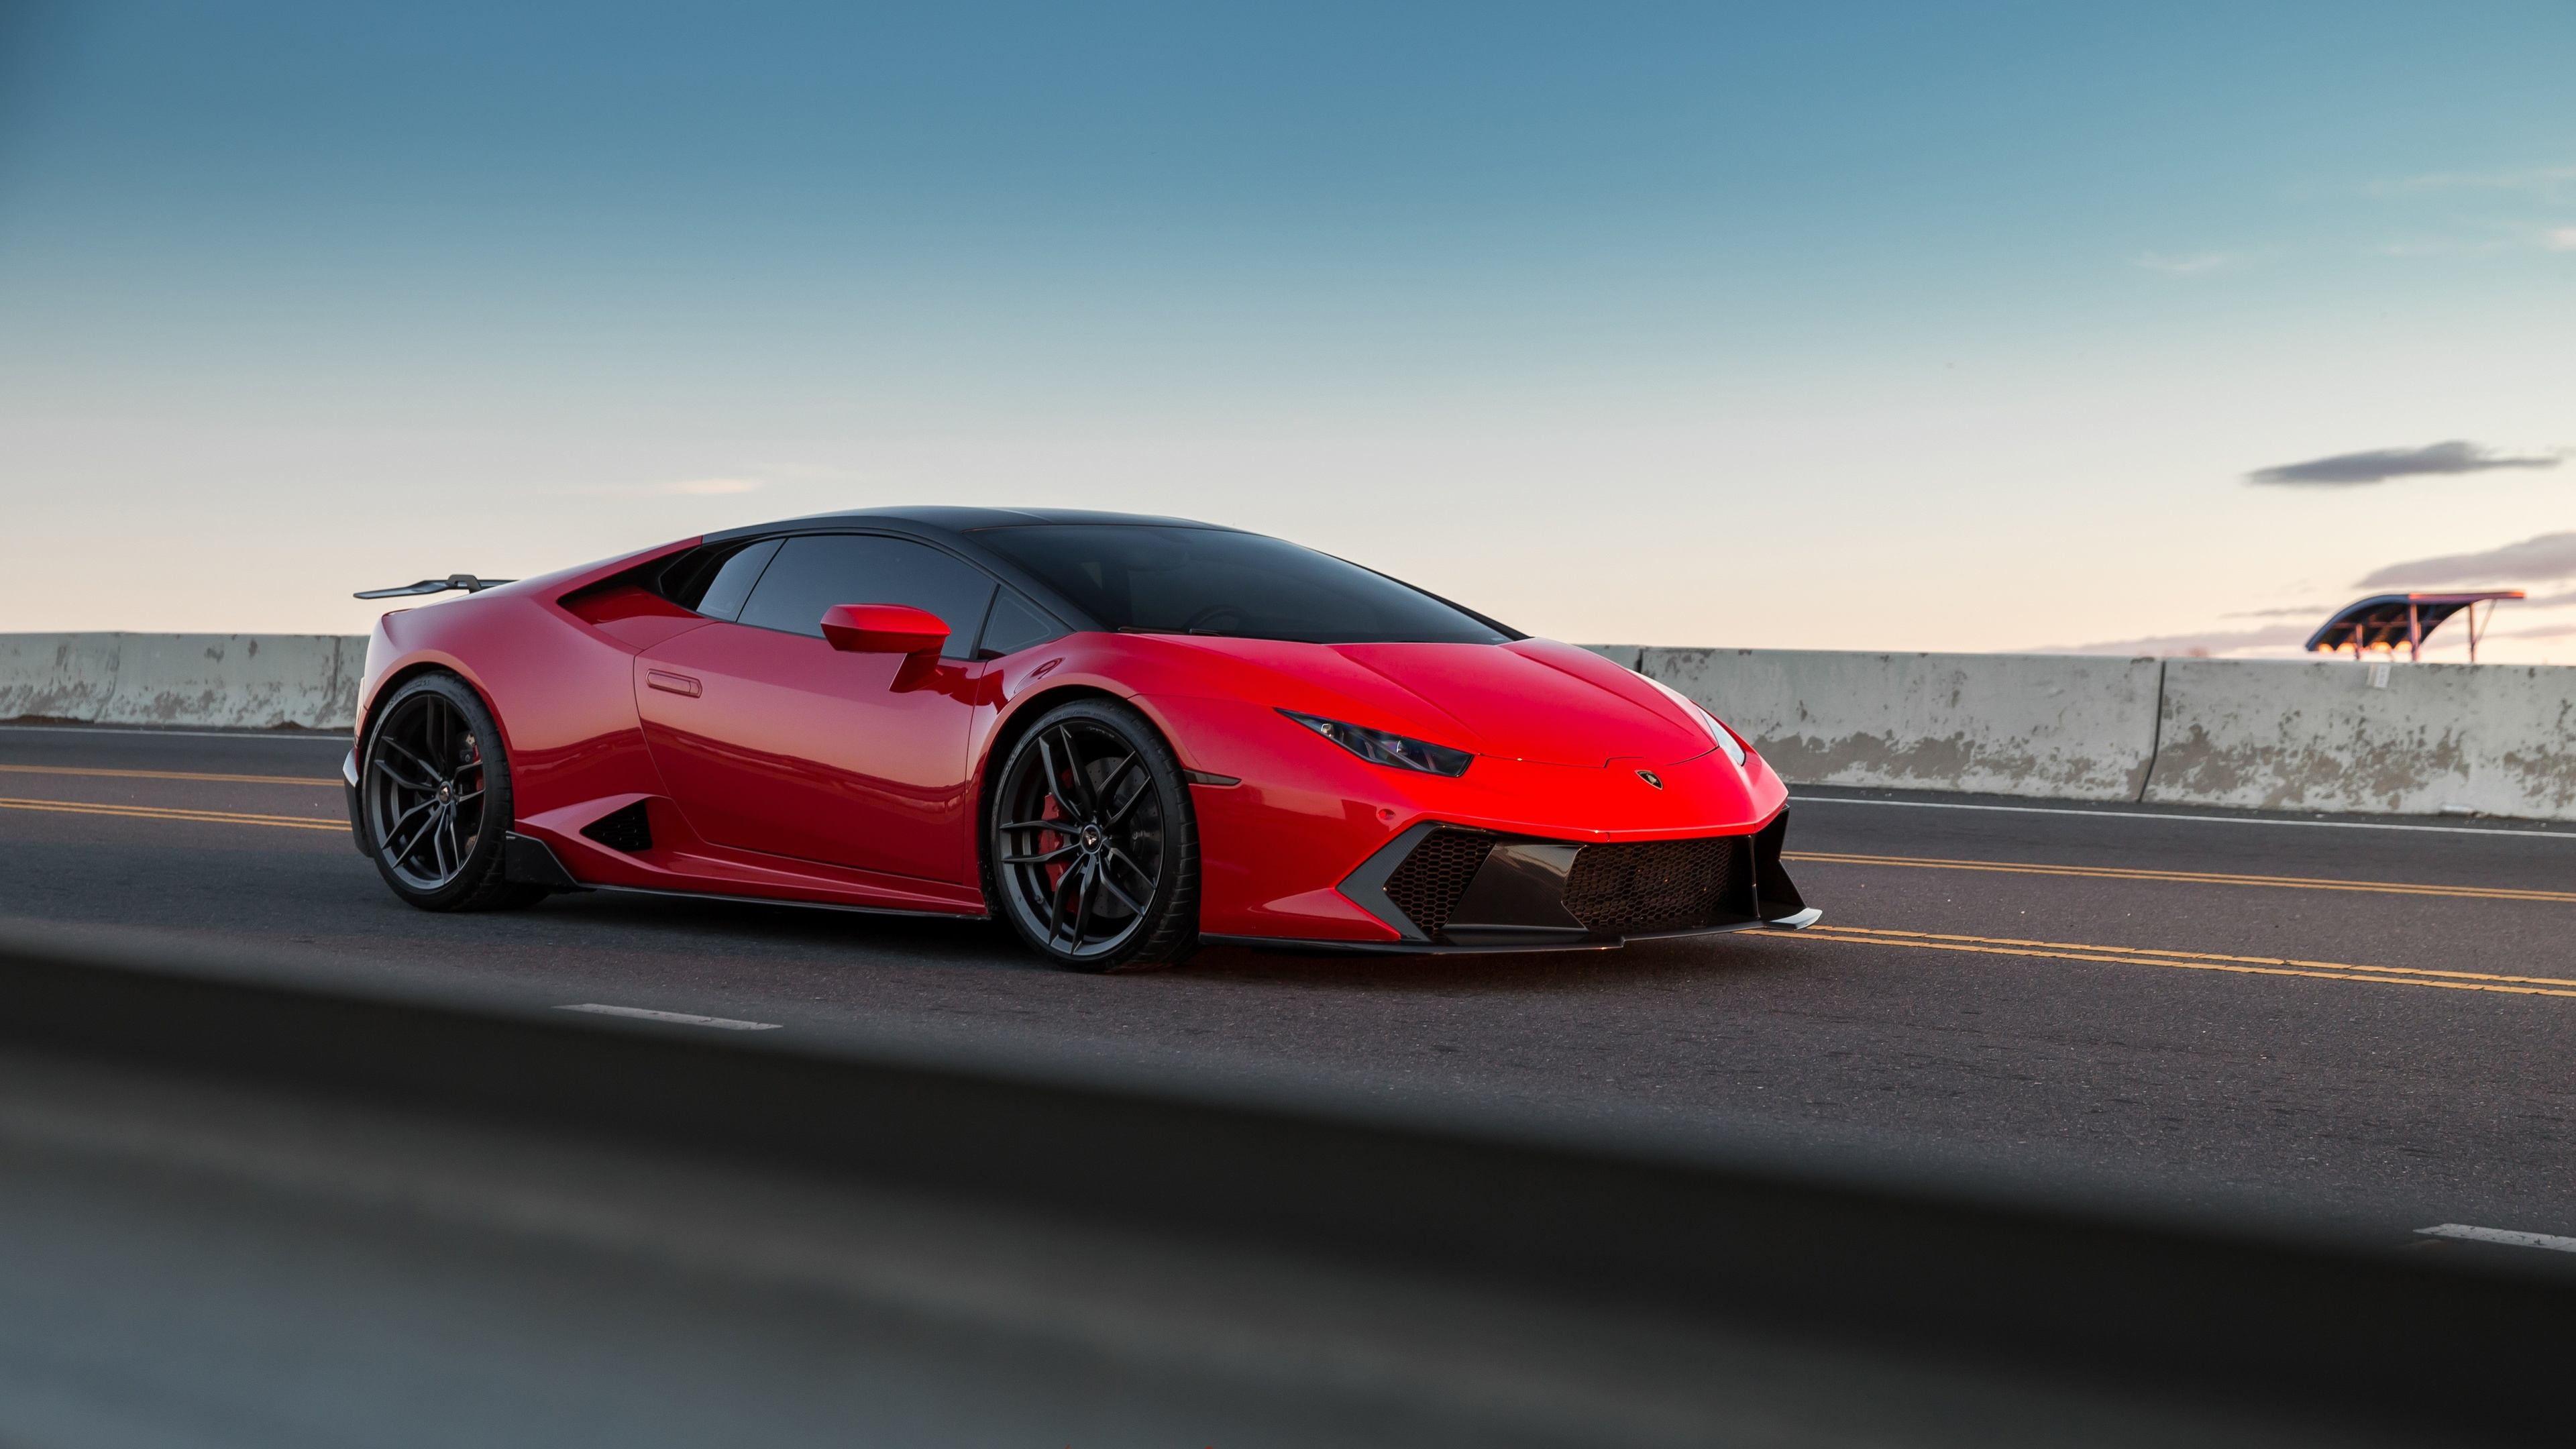 lamborghini huracan 5k 1539111990 - Lamborghini Huracan 5k - lamborghini wallpapers, lamborghini huracan wallpapers, hd-wallpapers, cars wallpapers, 5k wallpapers, 4k-wallpapers